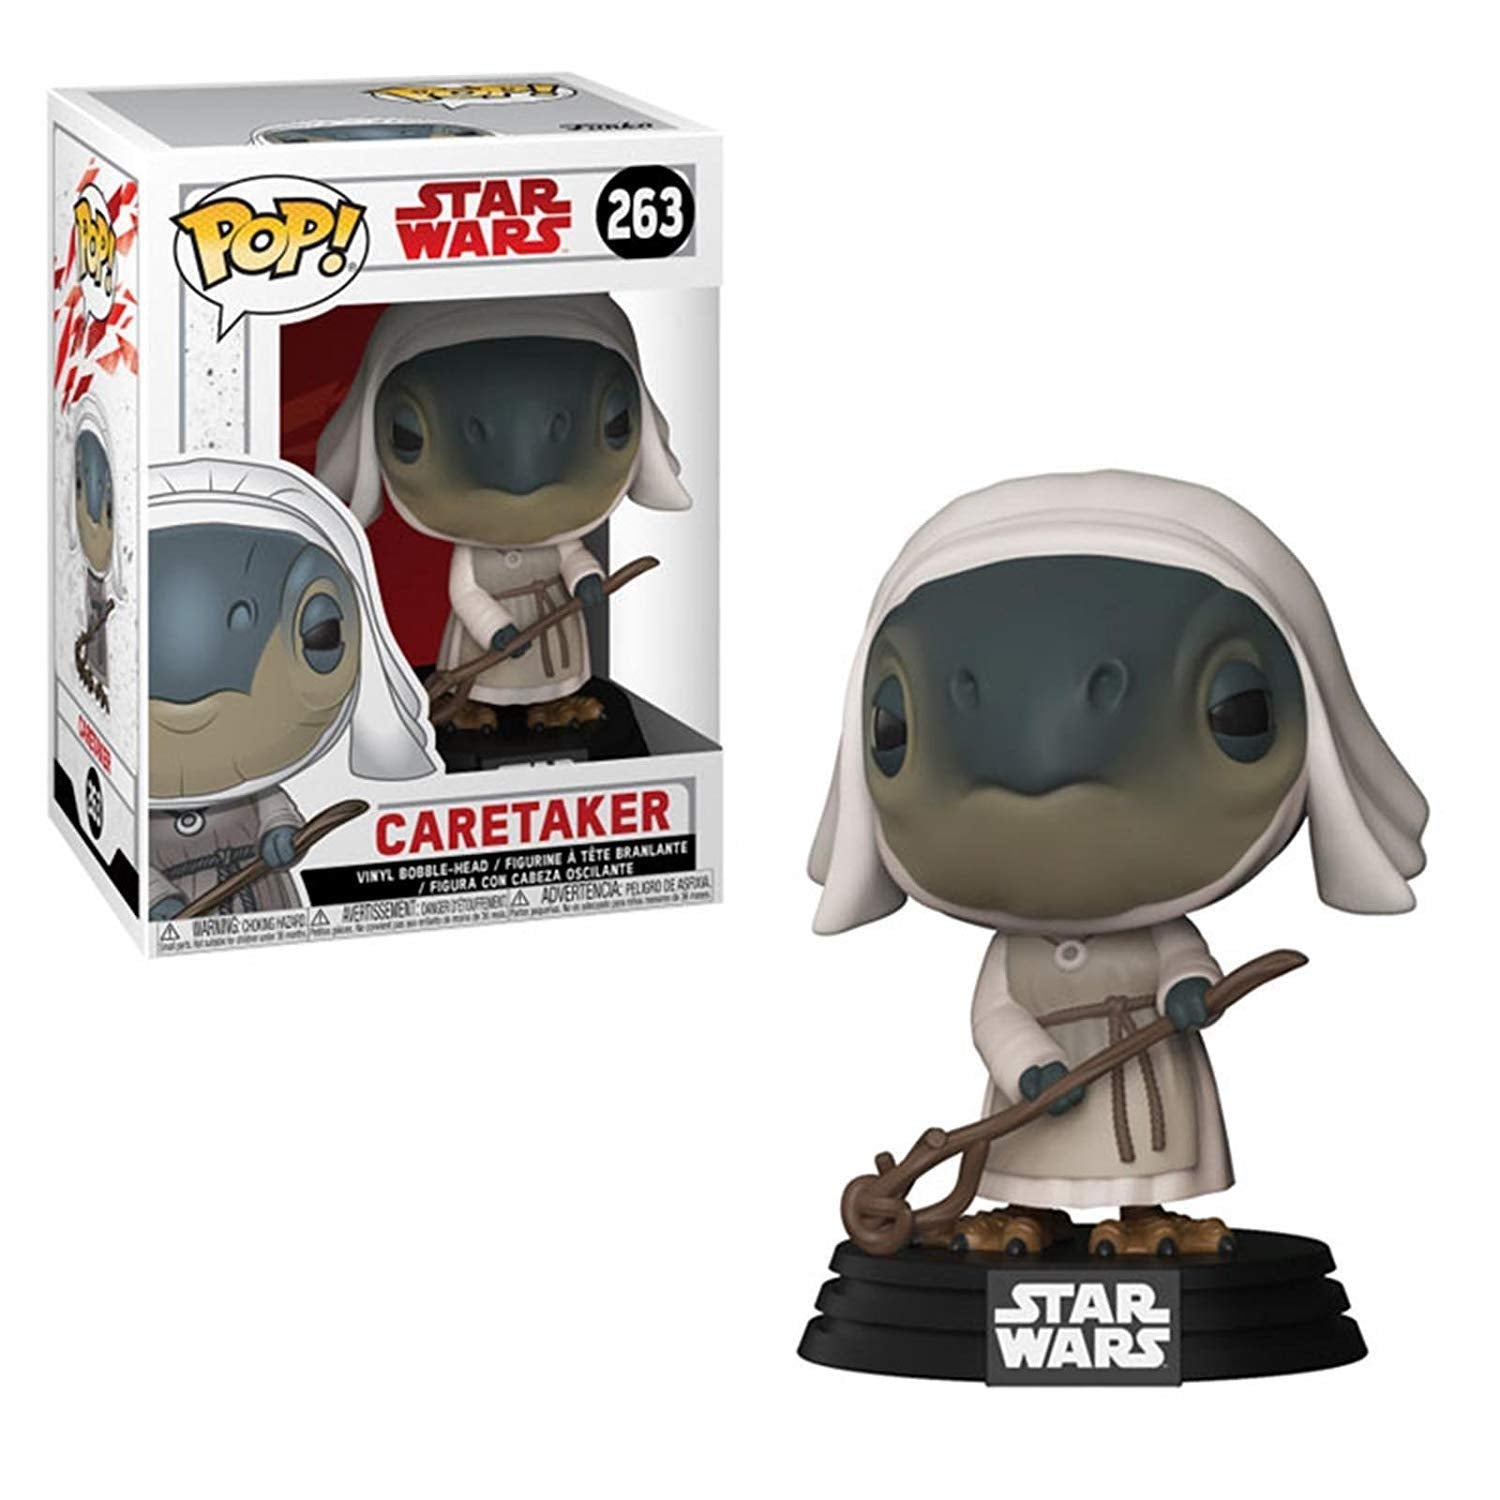 Caretaker Funko Pop! Star Wars The Last Jedi